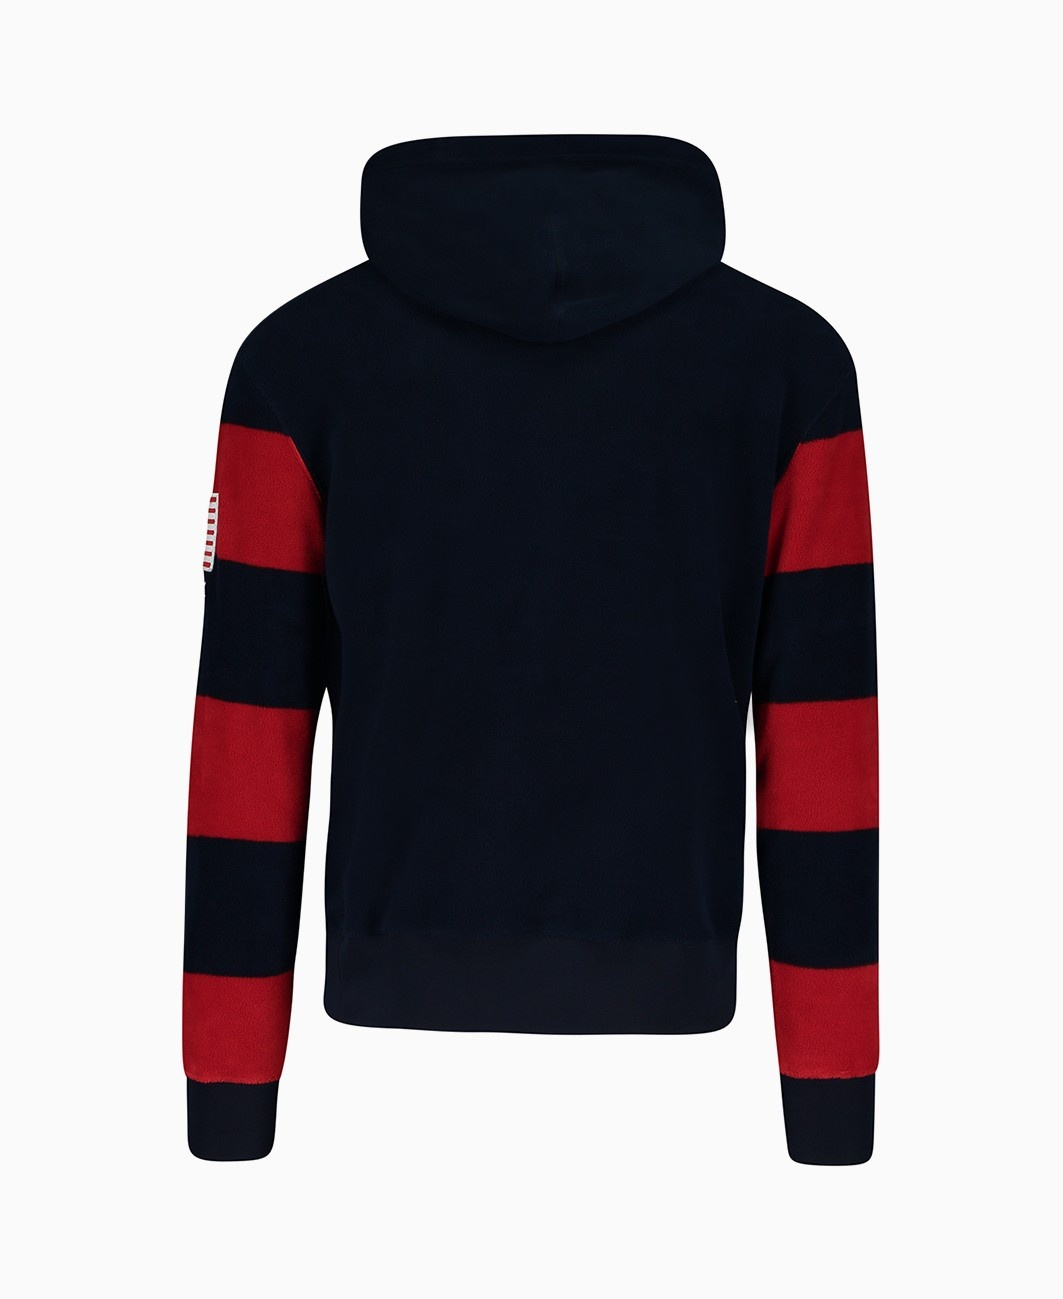 What are some good websites to buy Ralph Lauren clothing for cheap ... 351aefef0b8